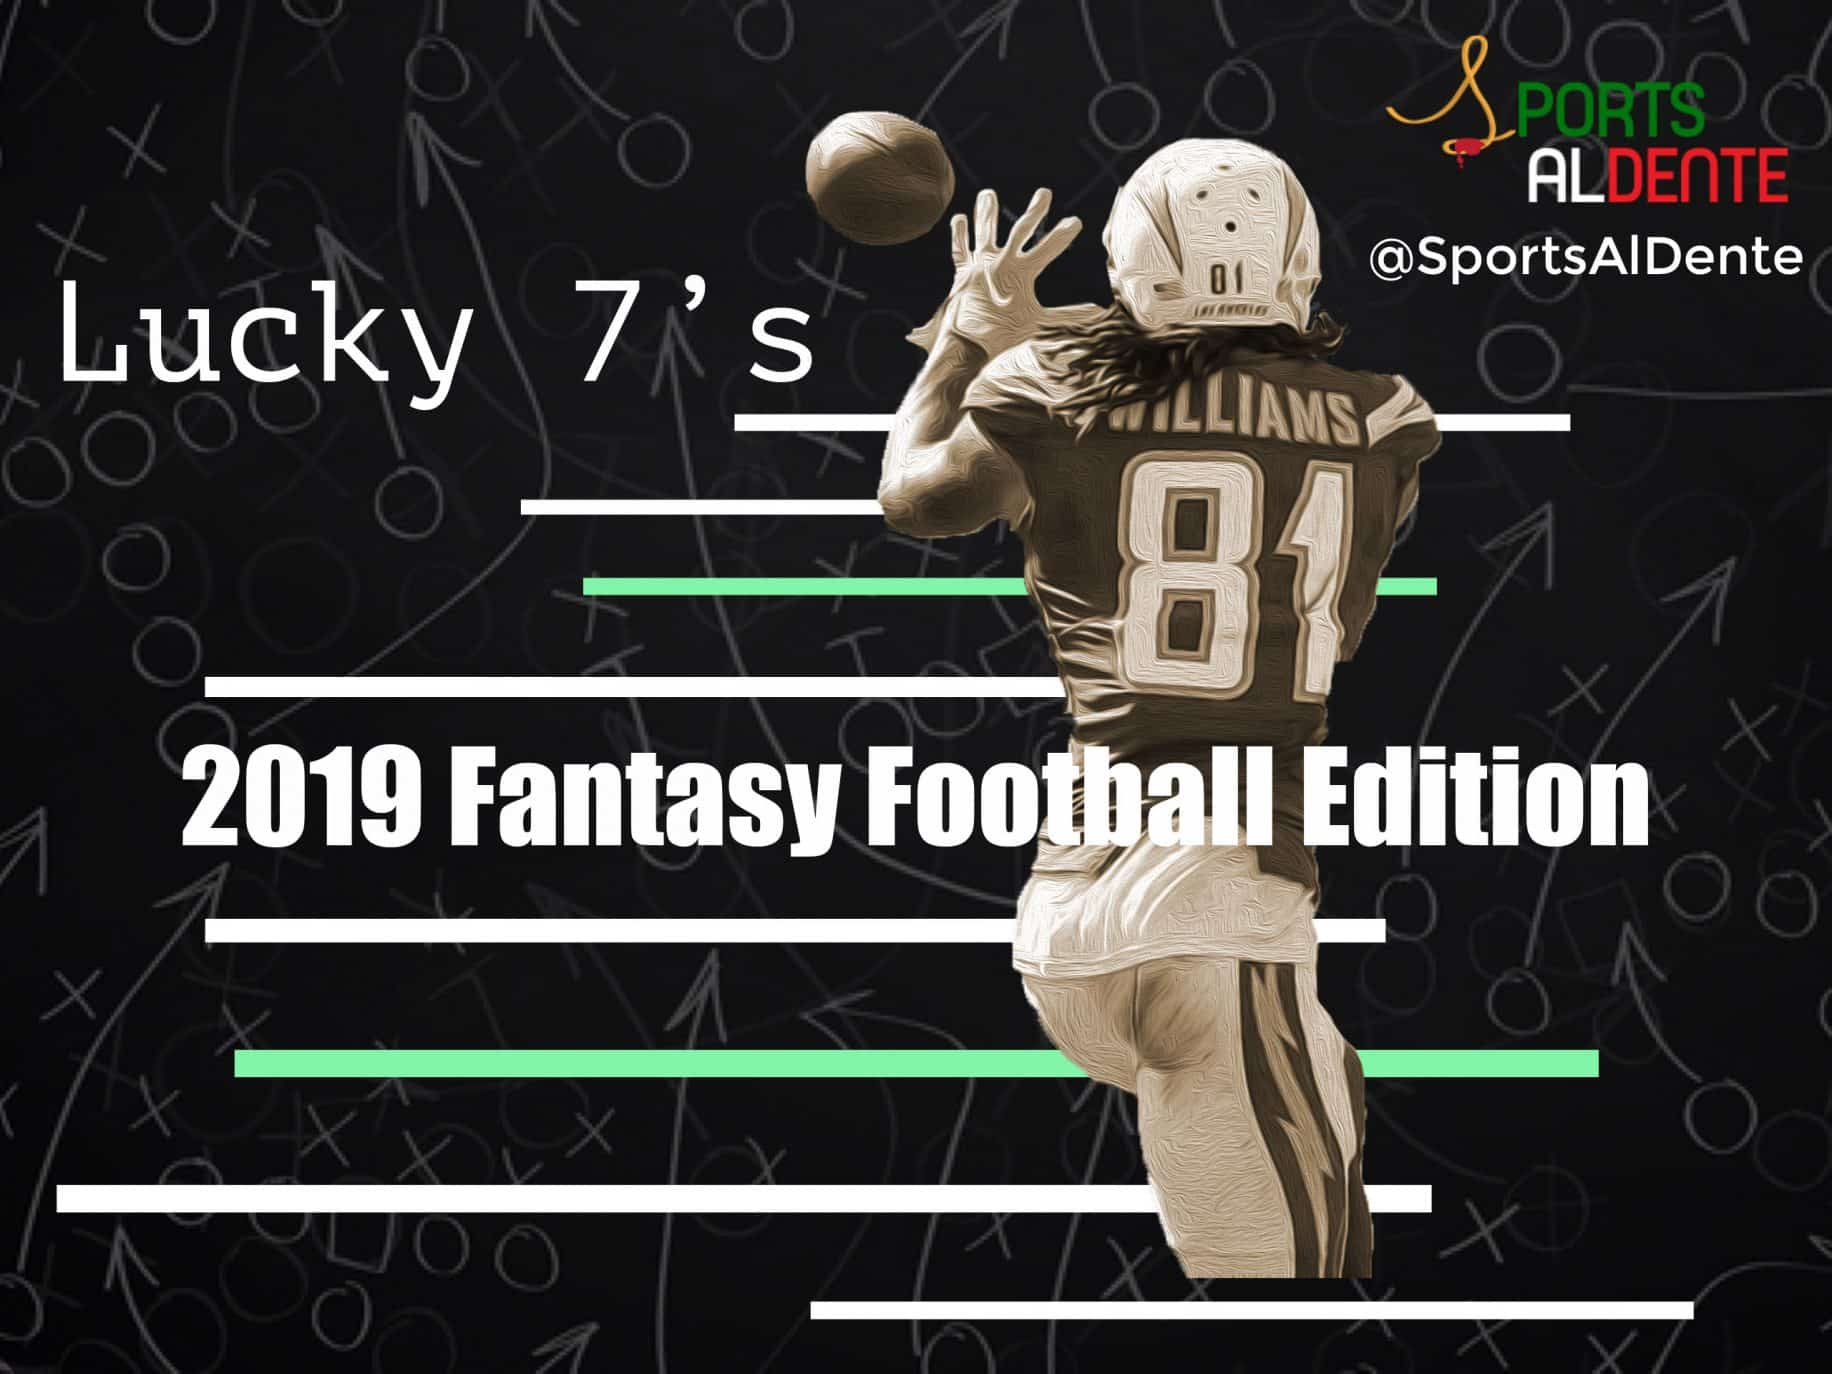 Lucky 7's – The 2019 Fantasy Football Edition